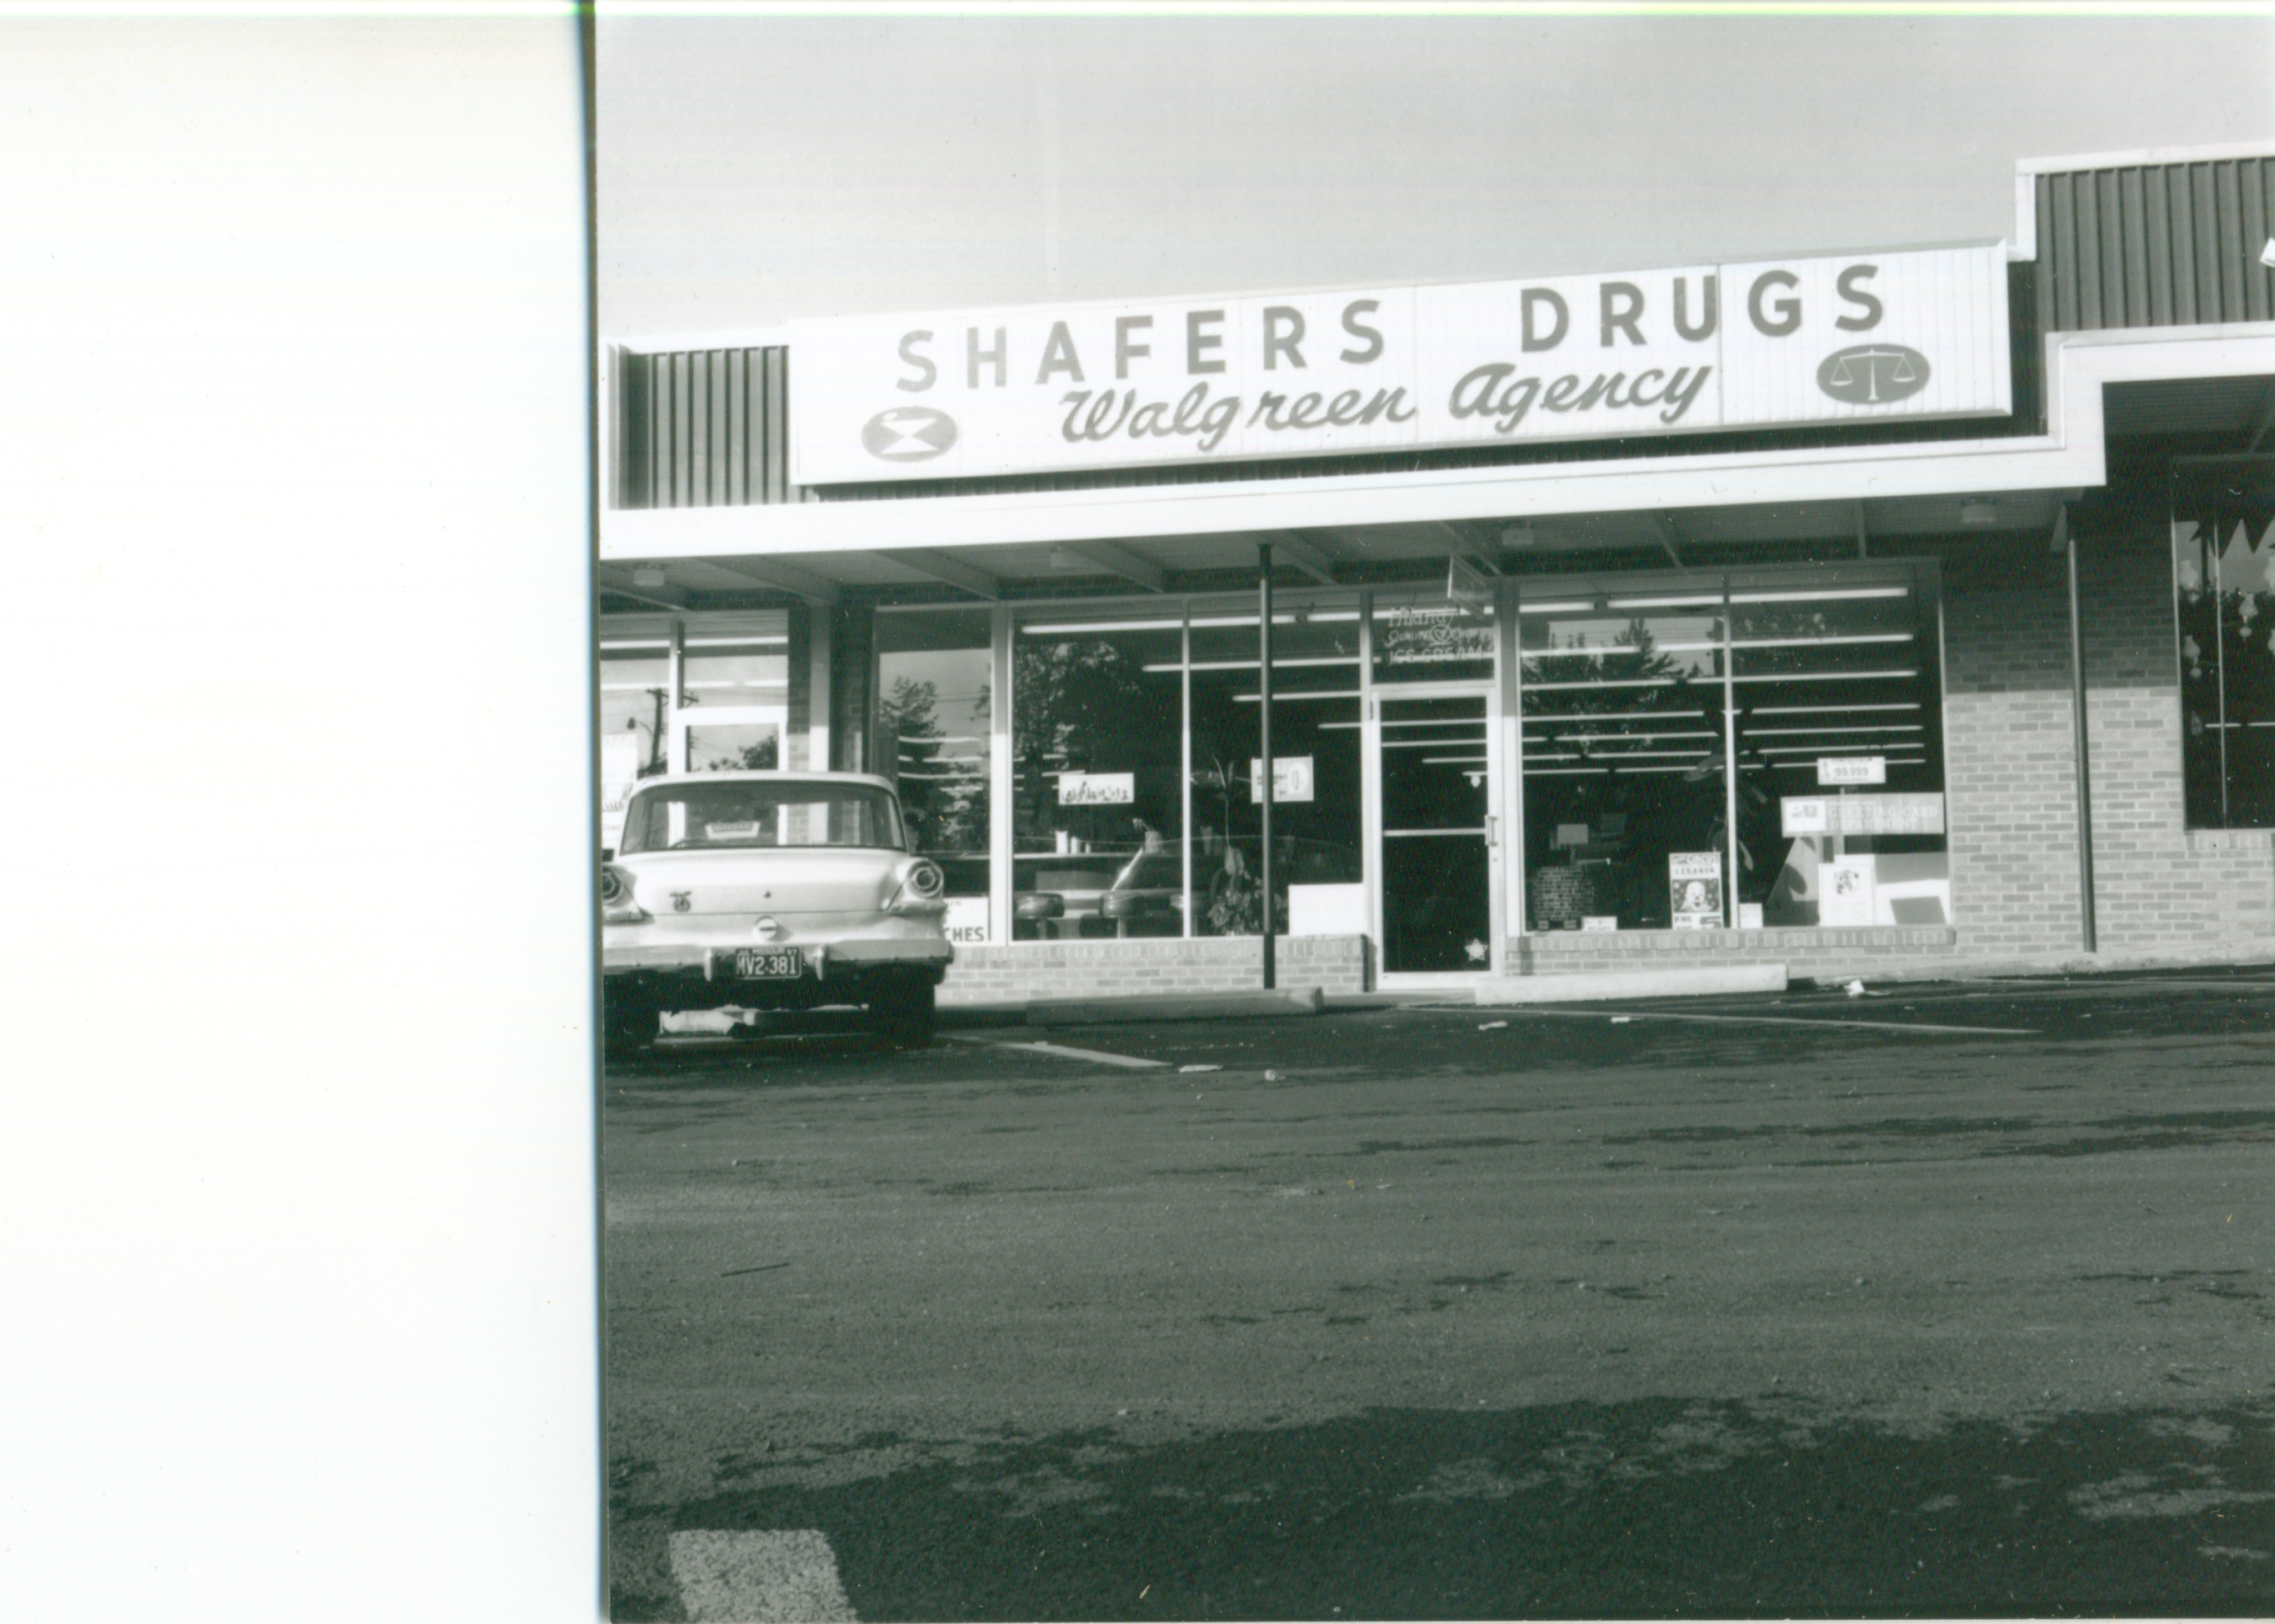 Shafers Drugs Walgreens